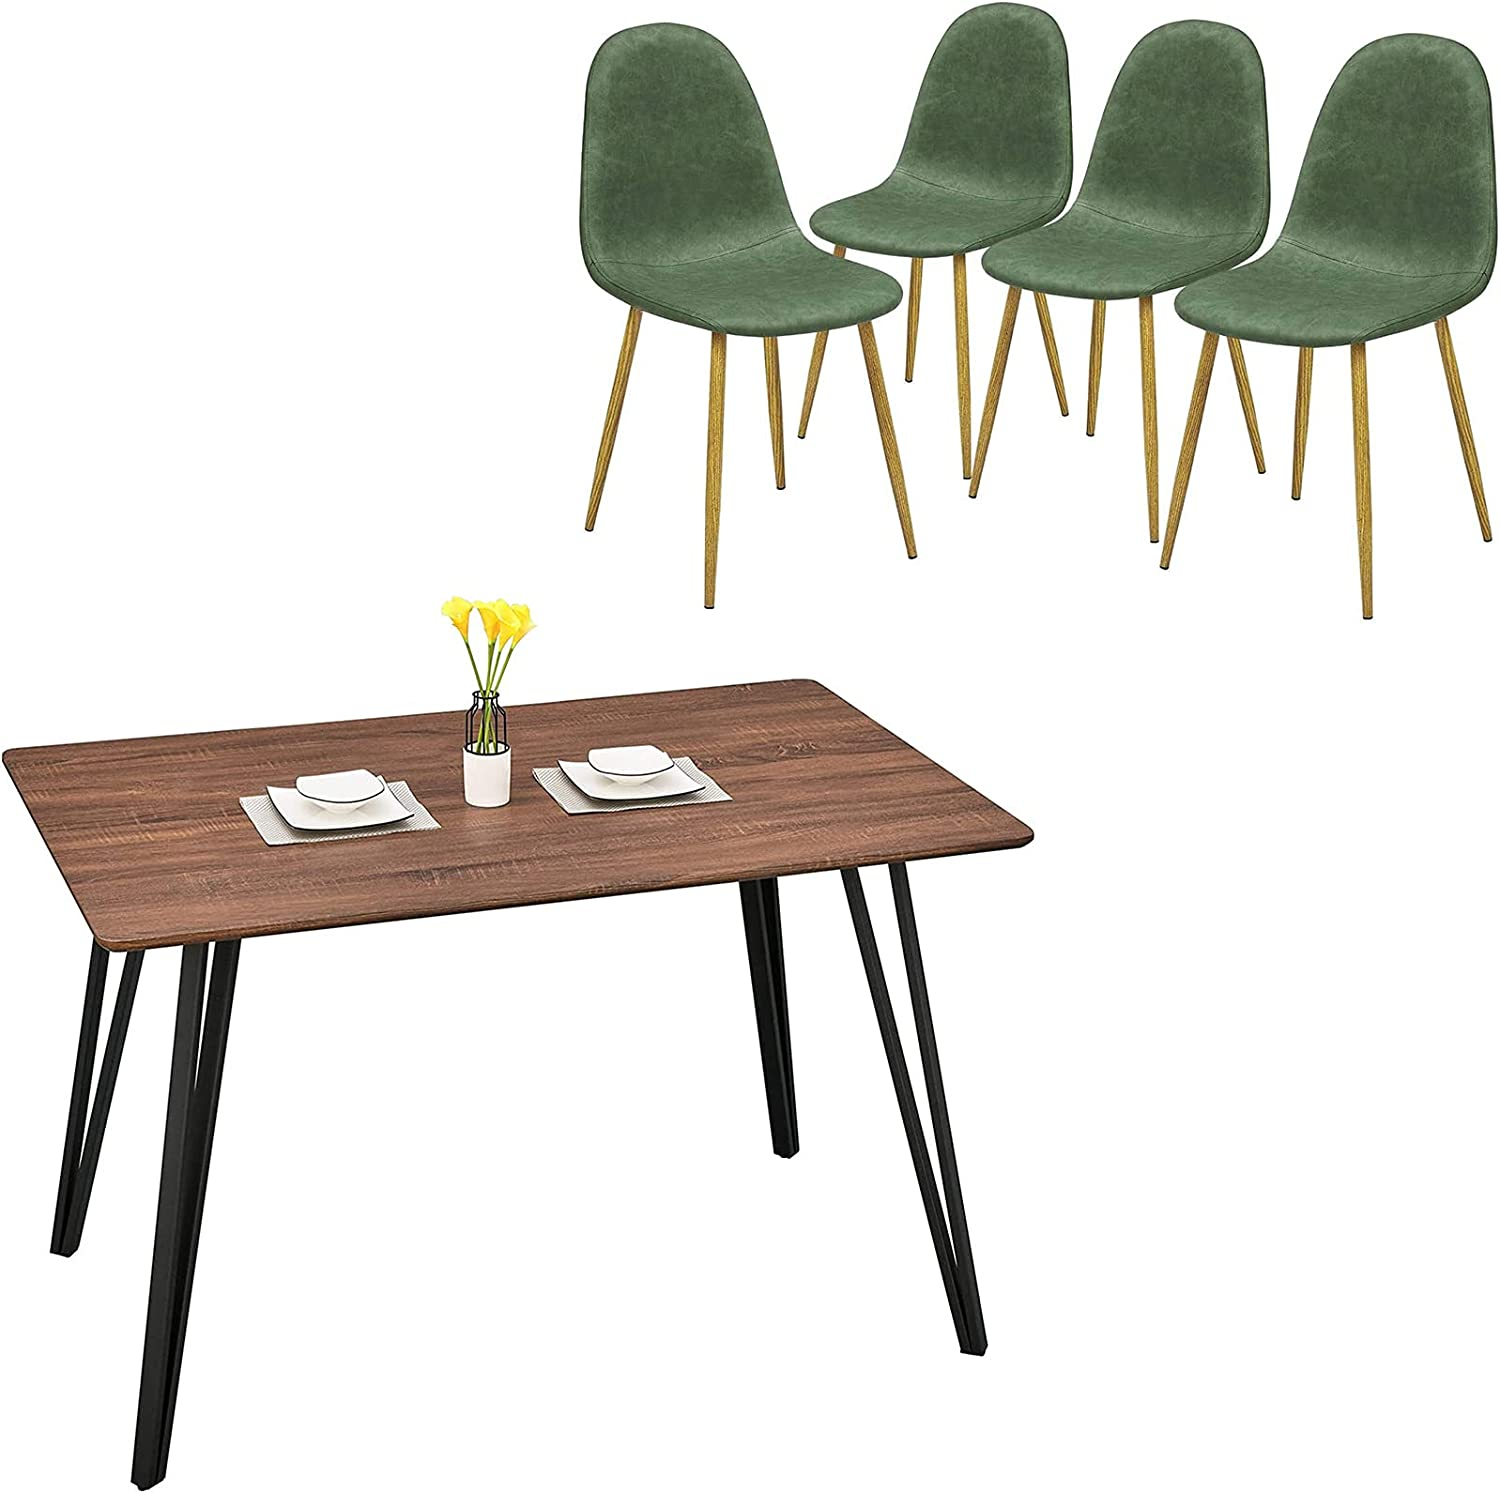 GreenForest Velvet Dining Chairs Low price Set of 47 Seasonal Wrap Introduction 4 Table '' and